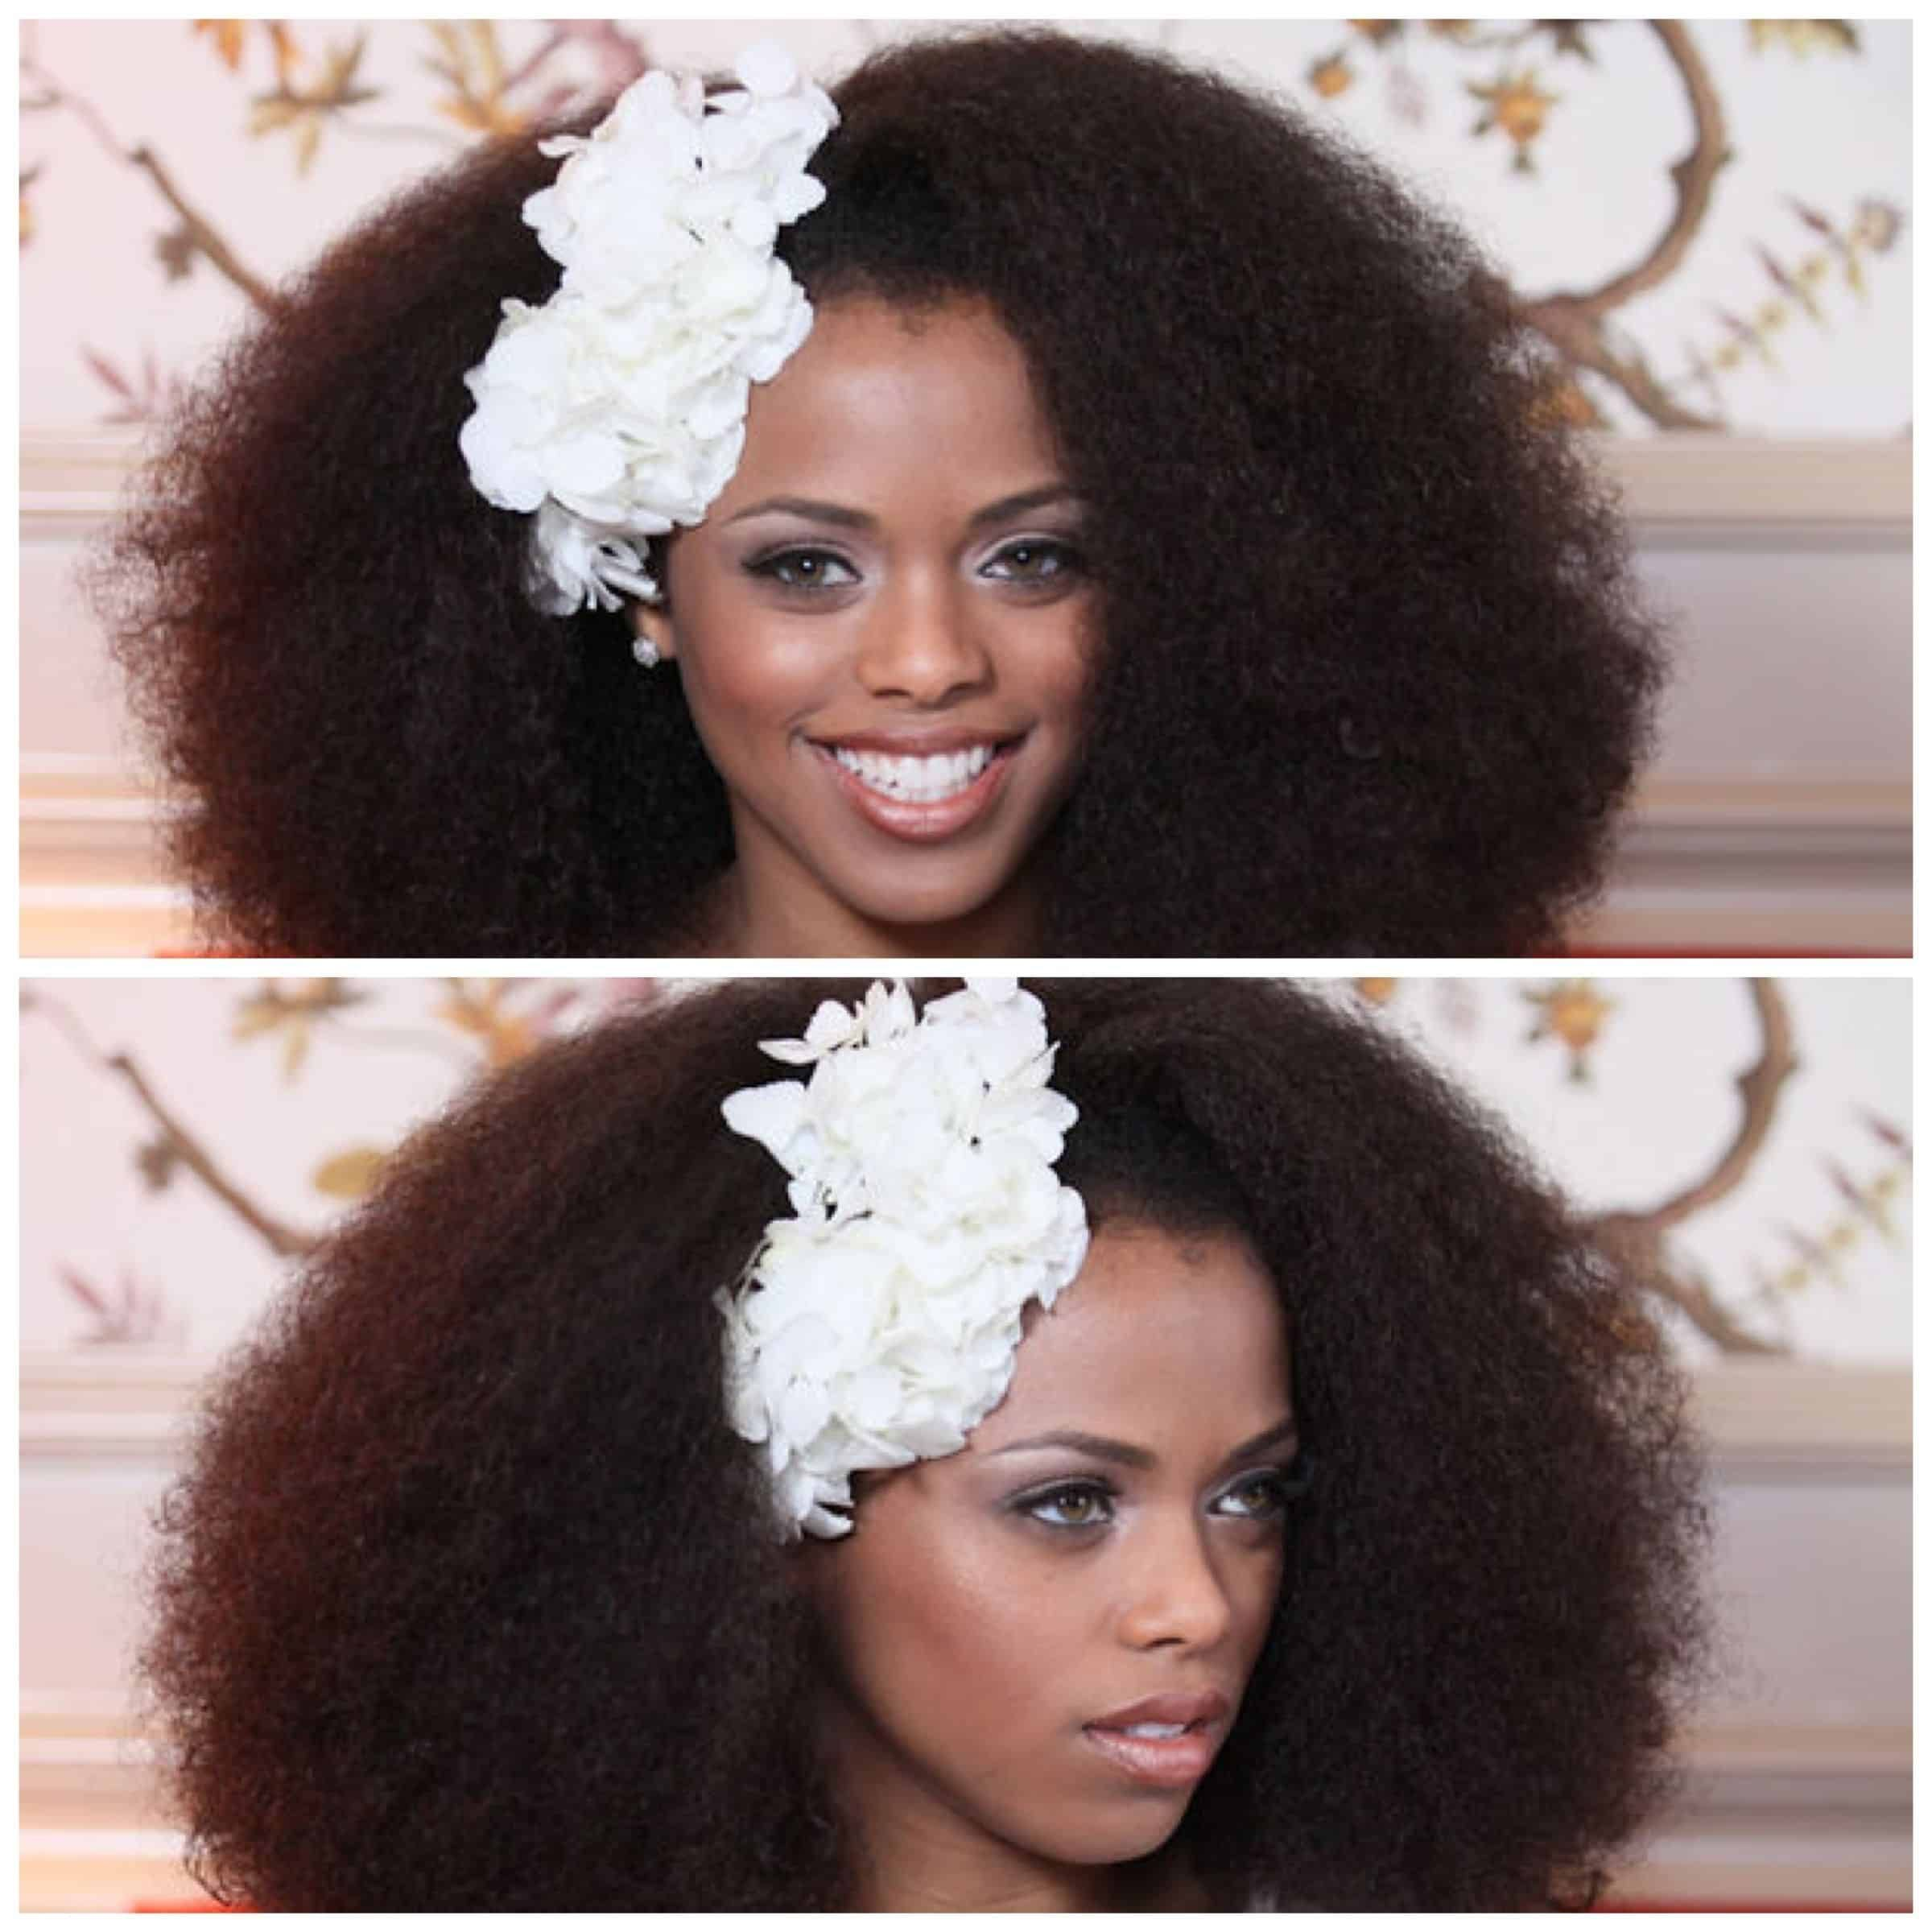 50 Best Wedding Hairstyles For Natural Afro Hair Hair Styles Hair Style Ideas In 2020 Natural Hair Bride Natural Wedding Hairstyles Afro Wedding Hairstyles